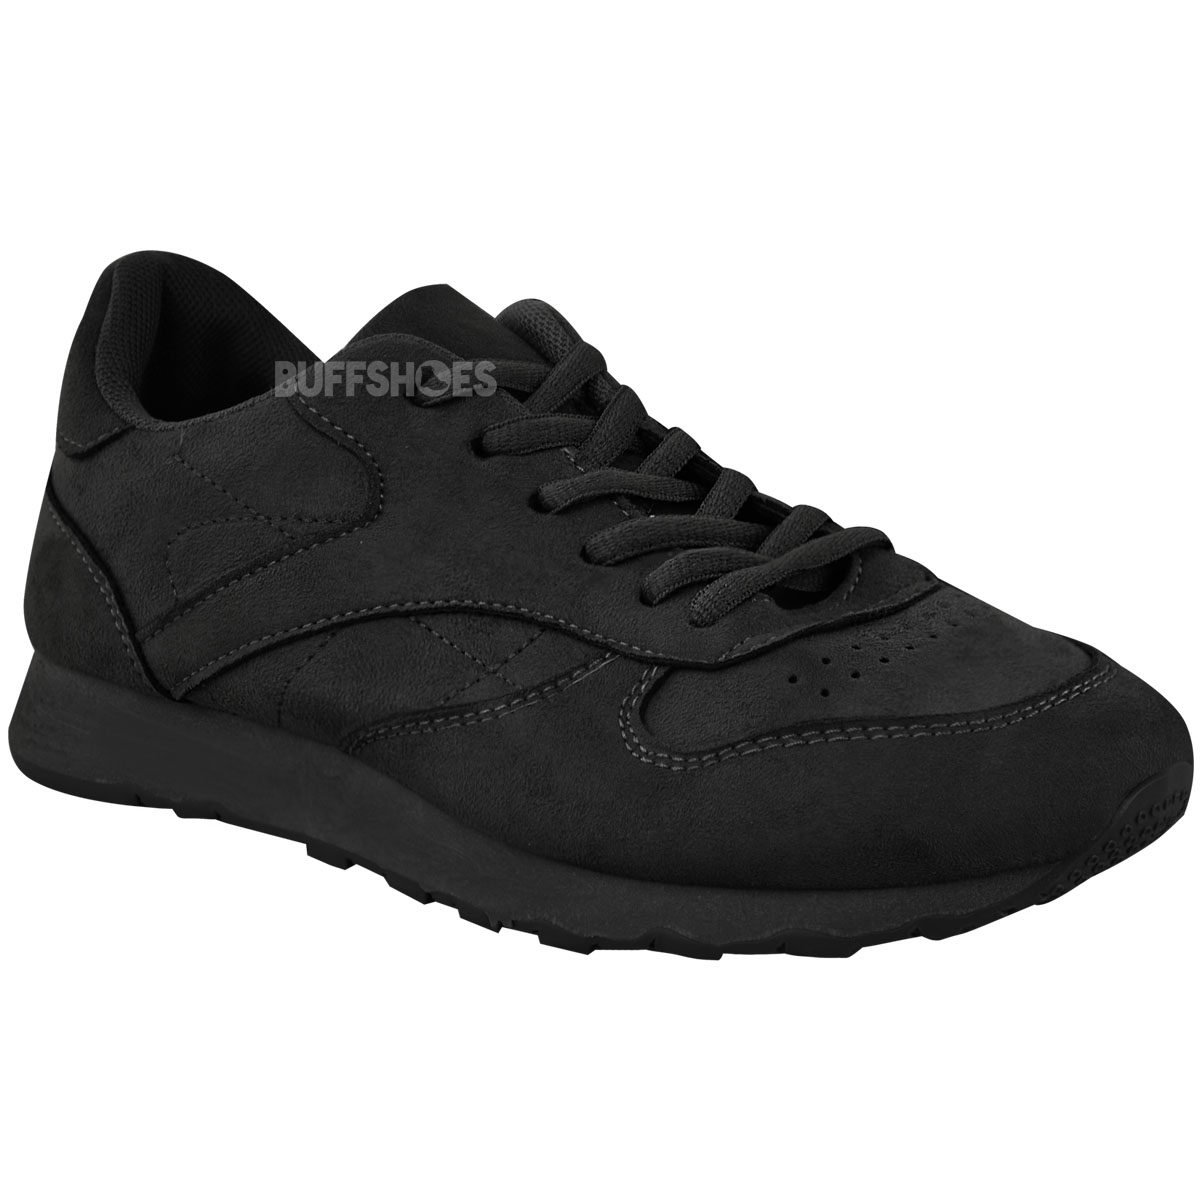 New Unisex Black White Classic Shoes Trainers Work School Casual Sneakes Size UK